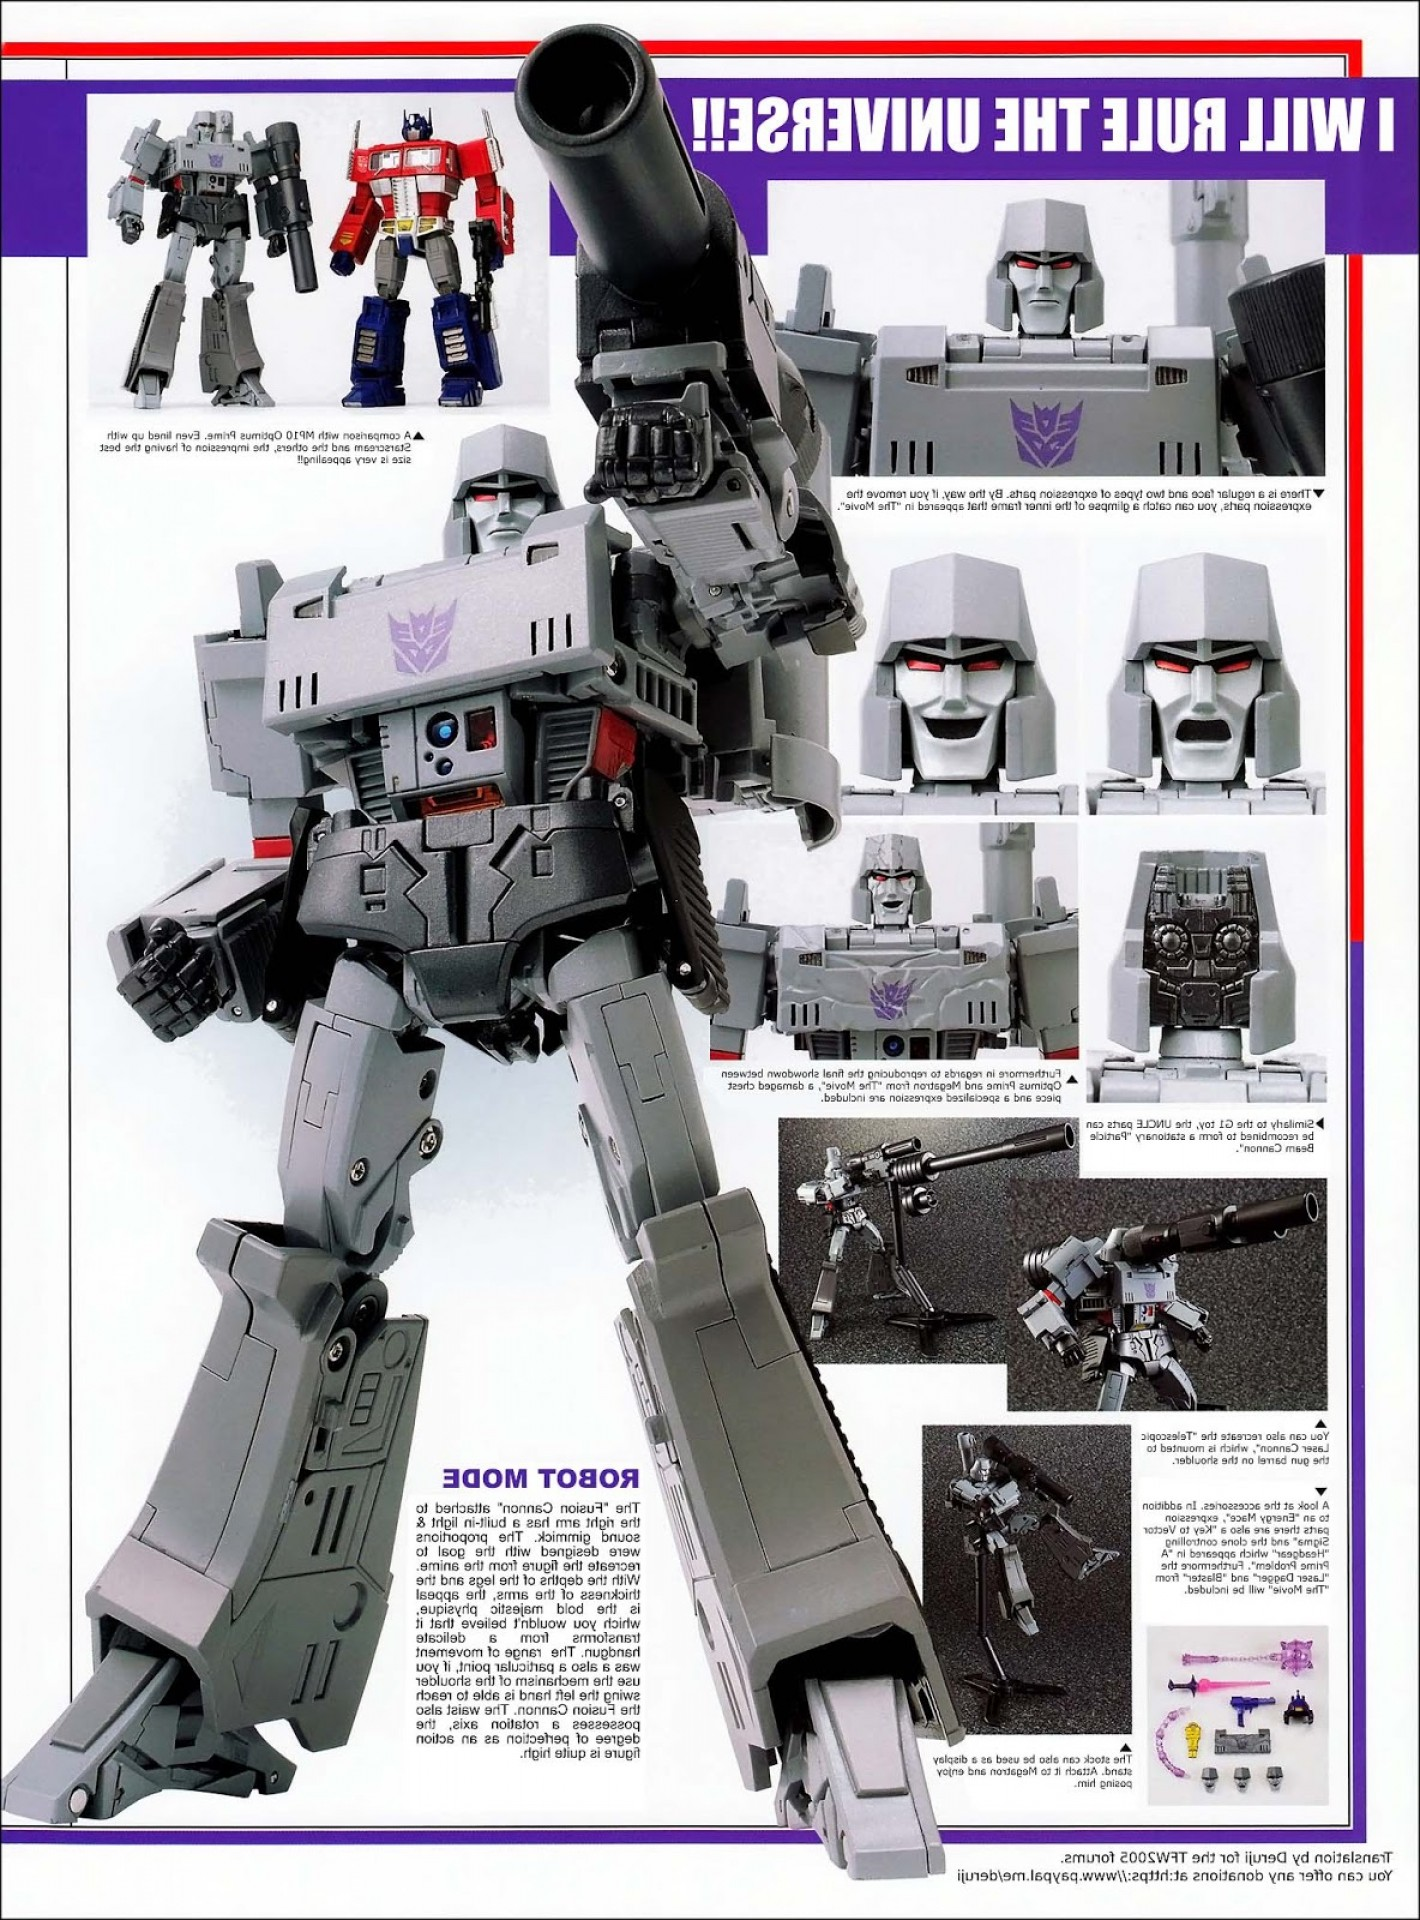 Key To Vector Sigma Transformers Prime: Tf Masterpiece Megatron Ver New Info